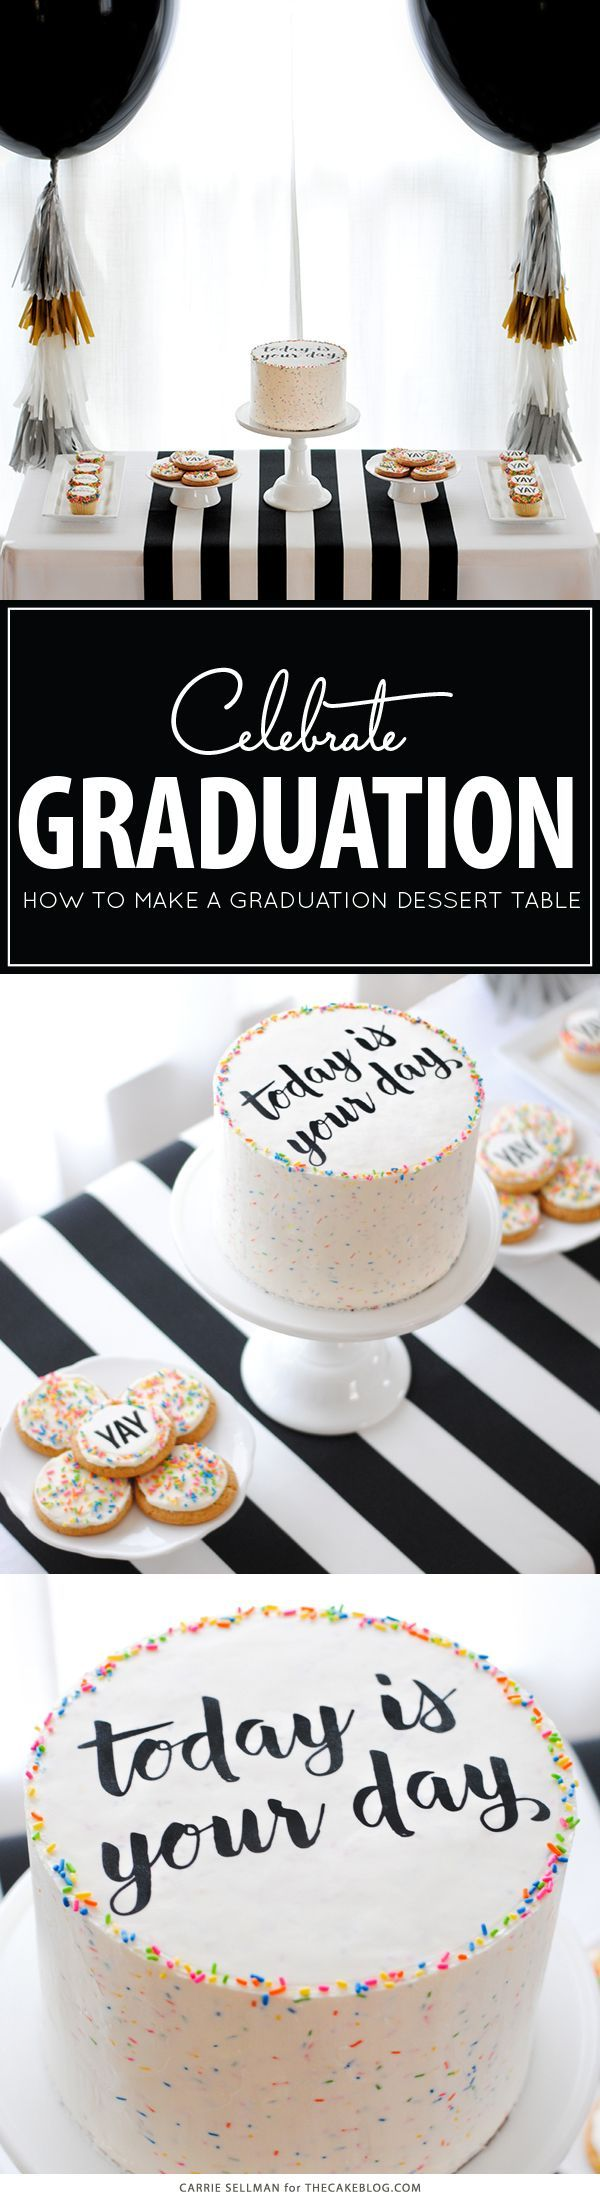 Graduation Party Desserts plus a DIY sprinkle cake with easy edible writing | by Carrie Sellman for TheCakeBlog.com